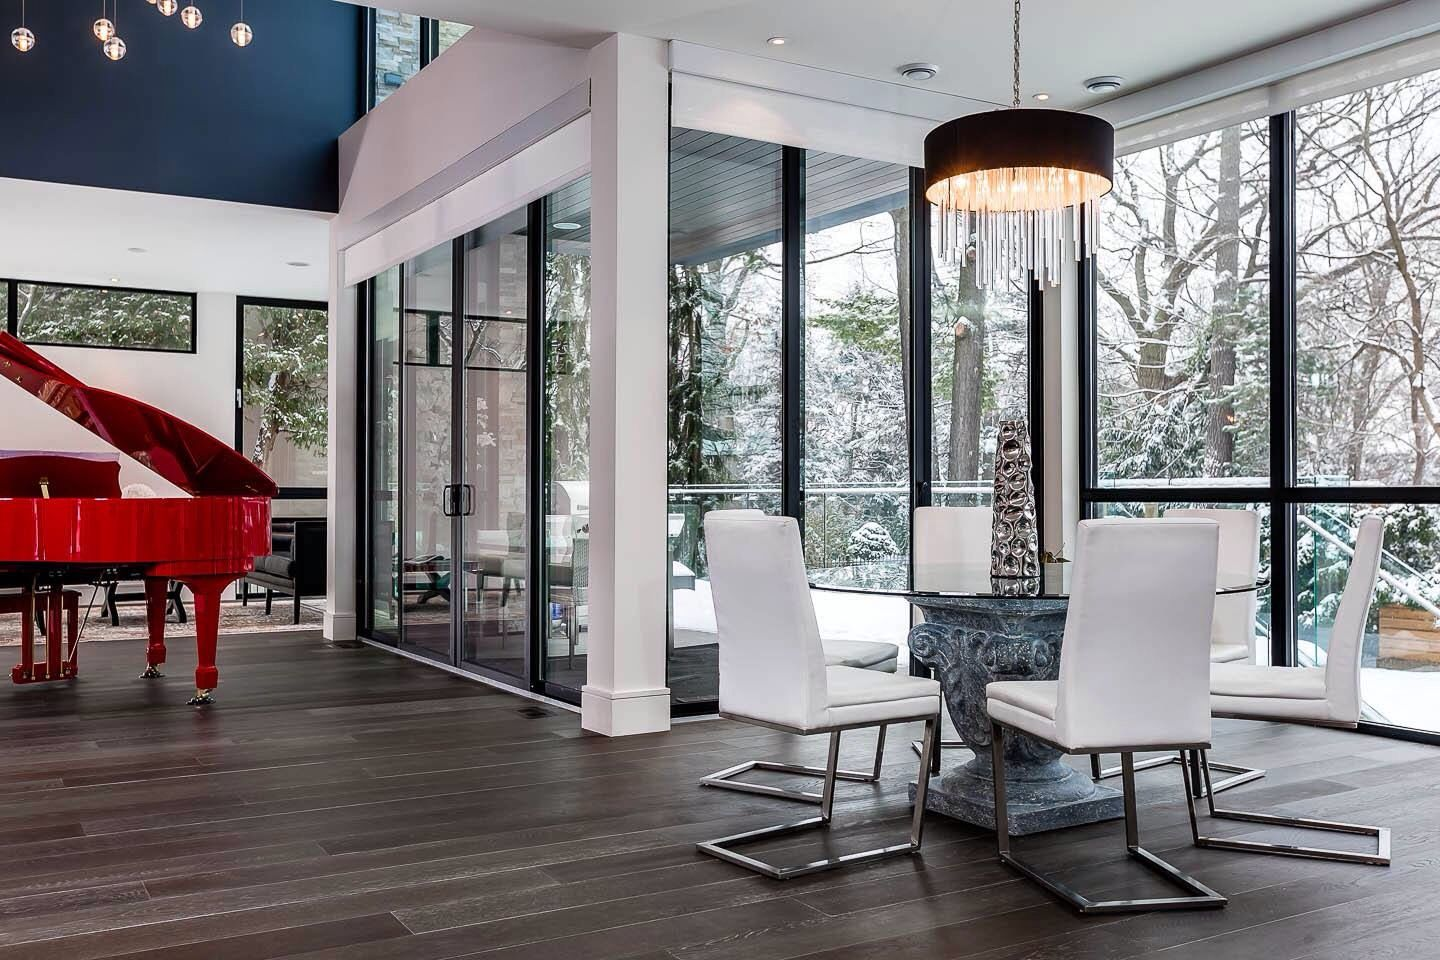 Modern home interior colors pin by sandy djuric on home ideas decor and designs  pinterest